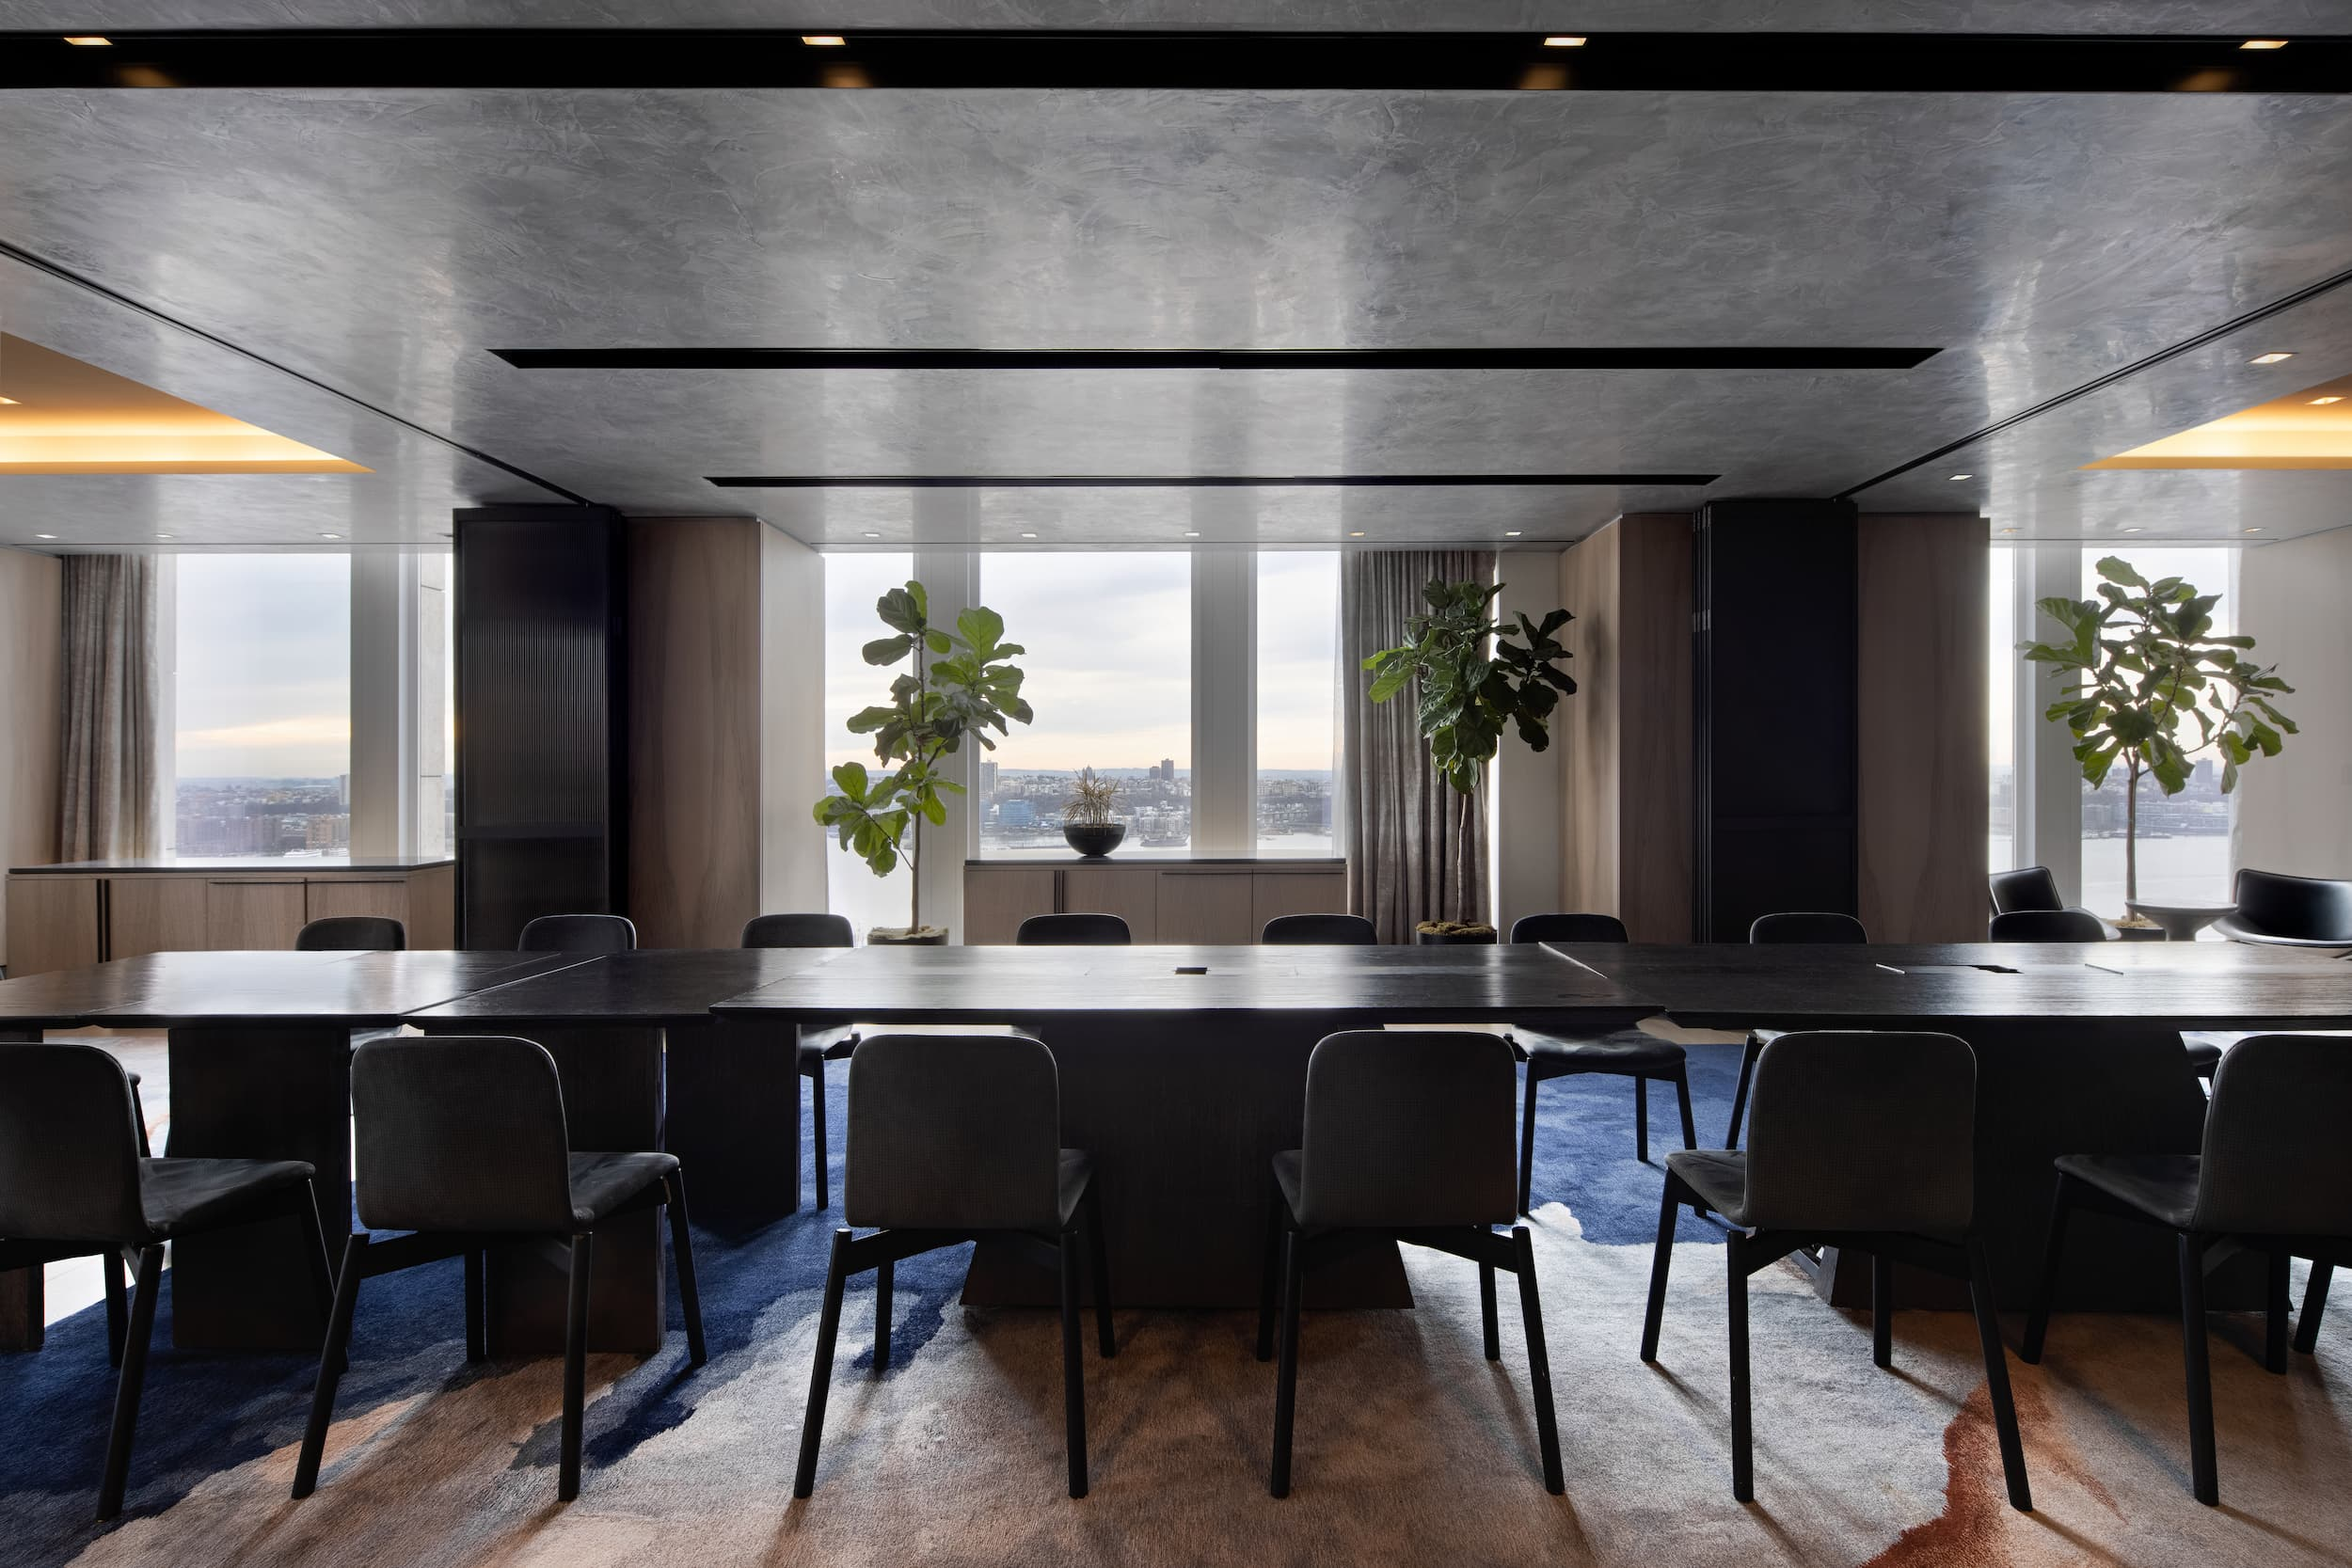 <private dining room with meeting table setup and views to river